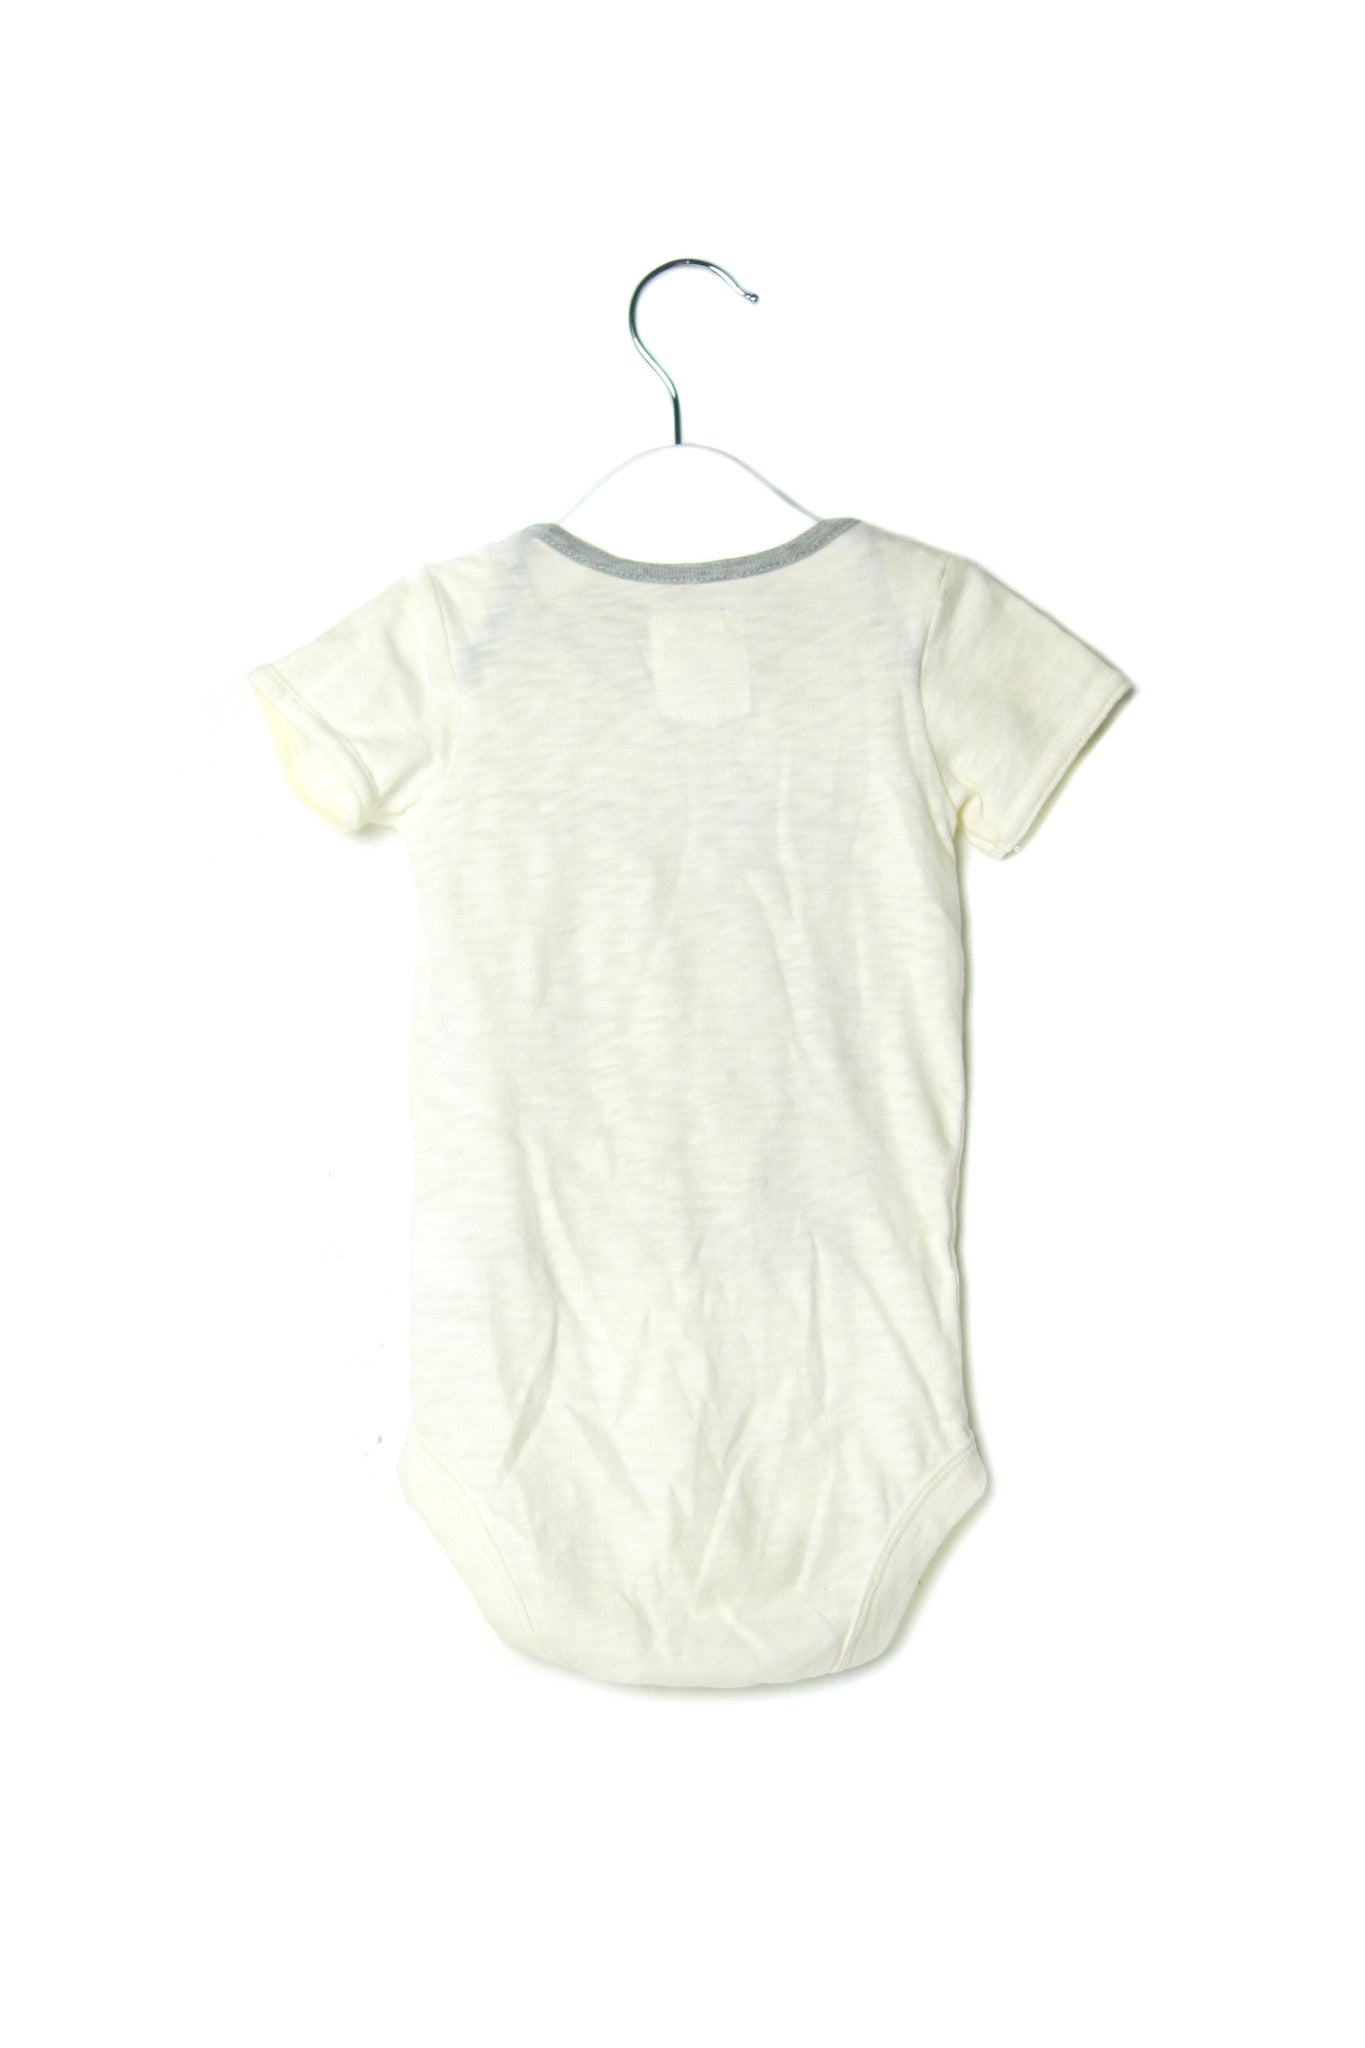 10002009 Crewcuts Baby~Bodysuit 3-6M at Retykle